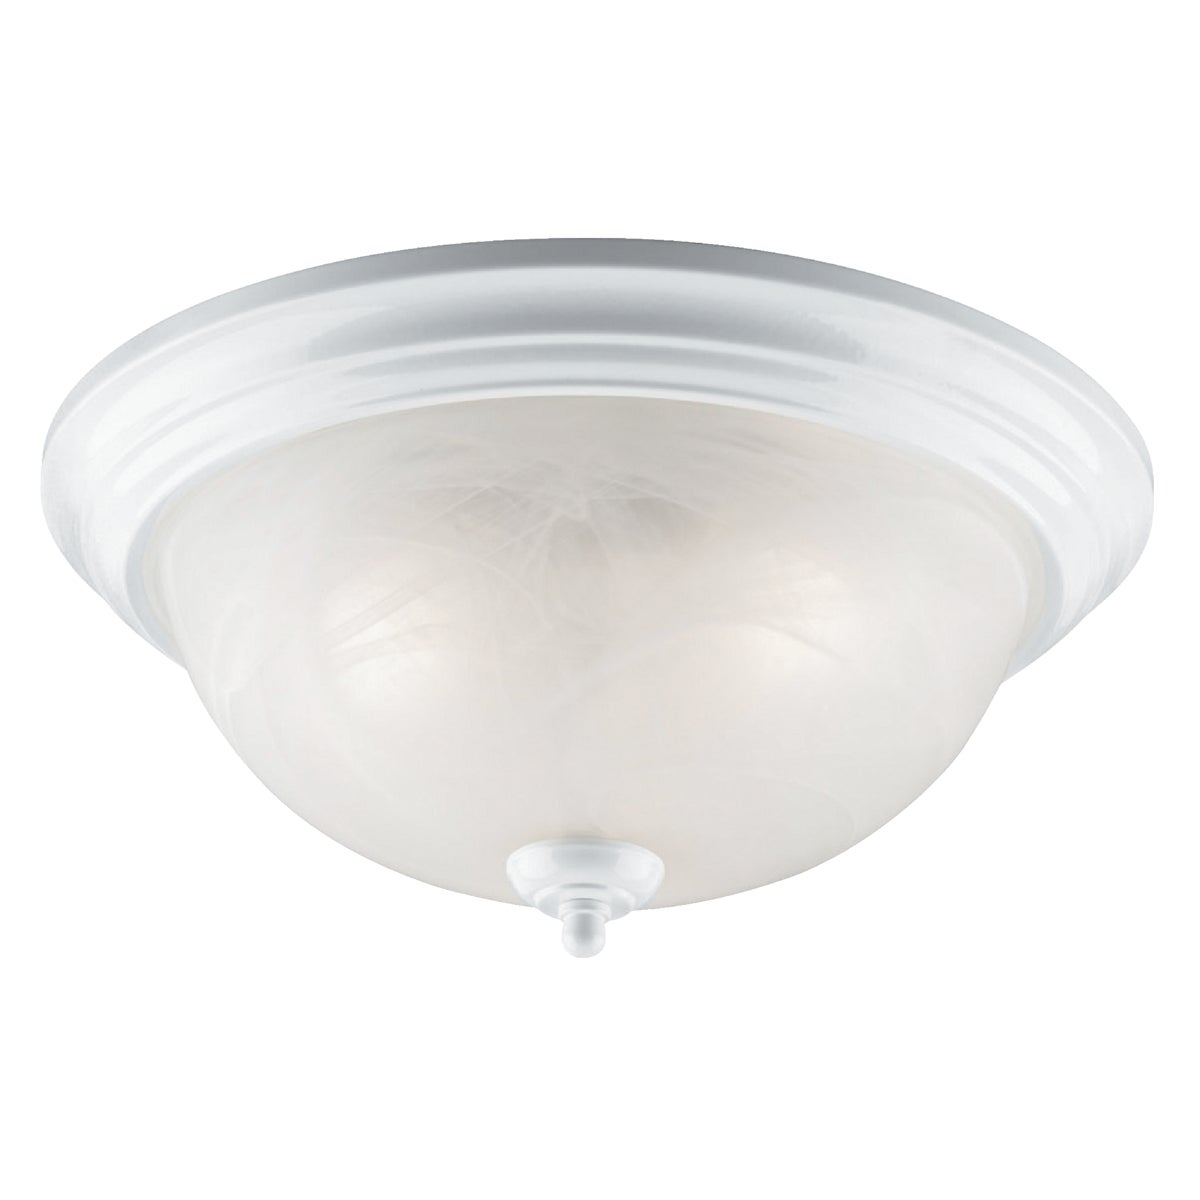 3BULB WH CEILING FIXTURE - IFM415WH by Canarm Gs